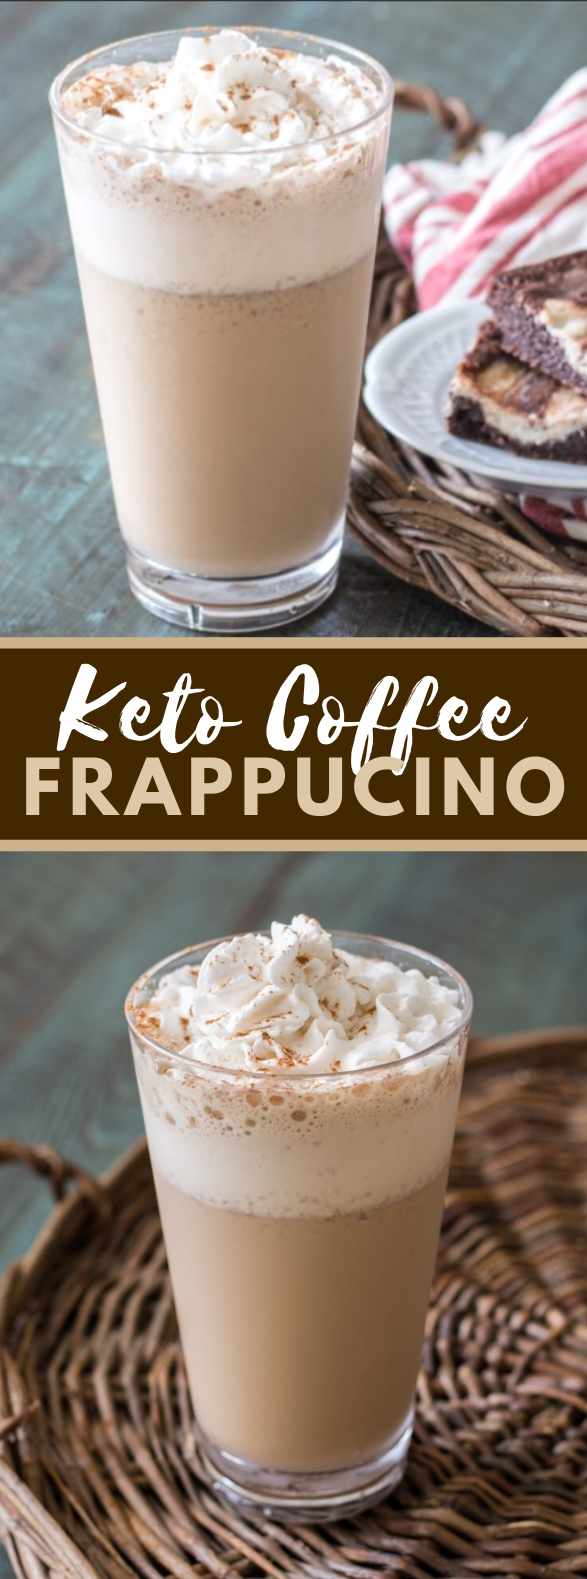 Keto Coffee Frappuccino (Starbucks Copycat) #drinks #lowcarb